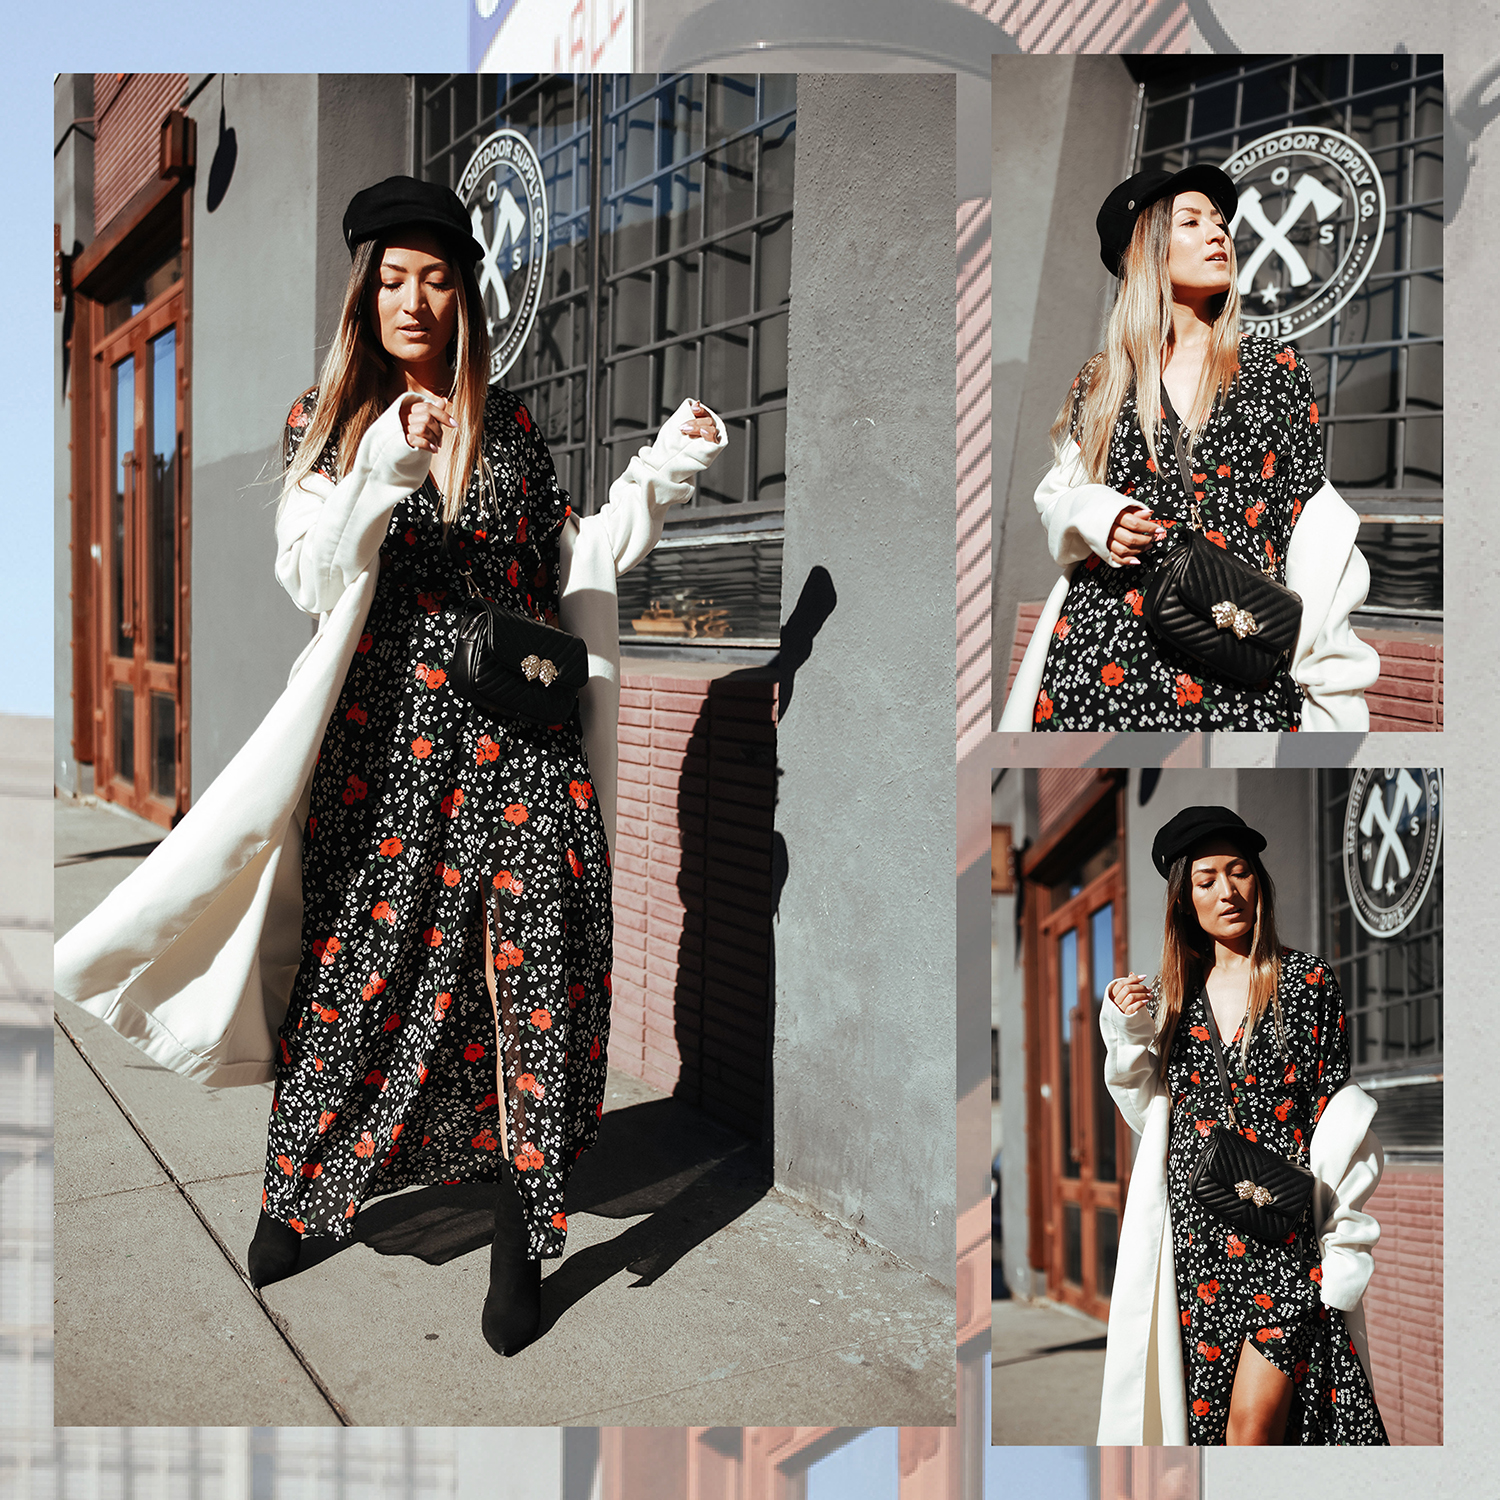 Winter Floral, winter dressing, winter, ootd, outfit, melrodstyle, la blogger, street style, latina blogger, hispanic blogger, dress, floral dress, coat, boots, fall, style, trending, outfit of the day